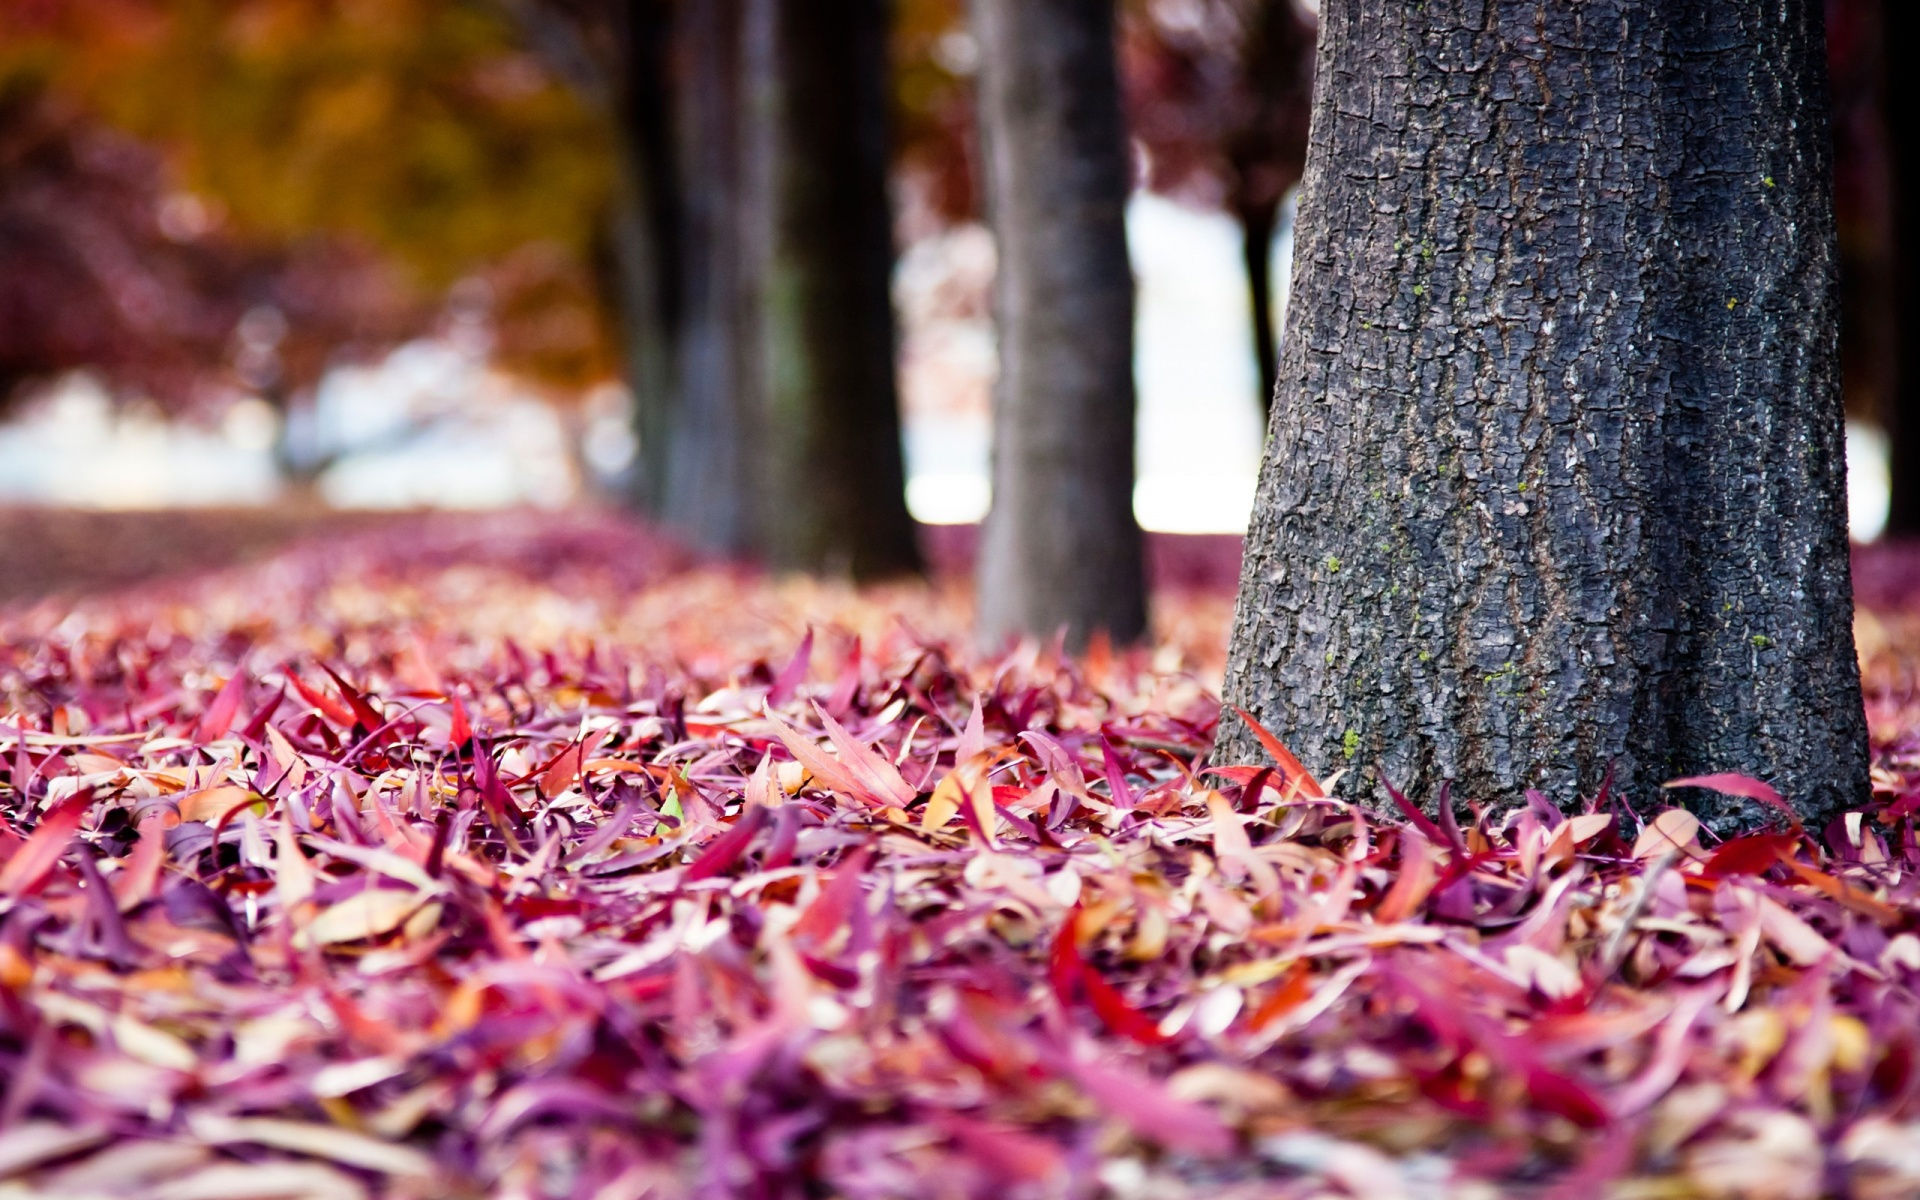 Labels Red Autumn Leaves Photography Hd Wallpapers For: Red Autumn Leaves Stock Photos